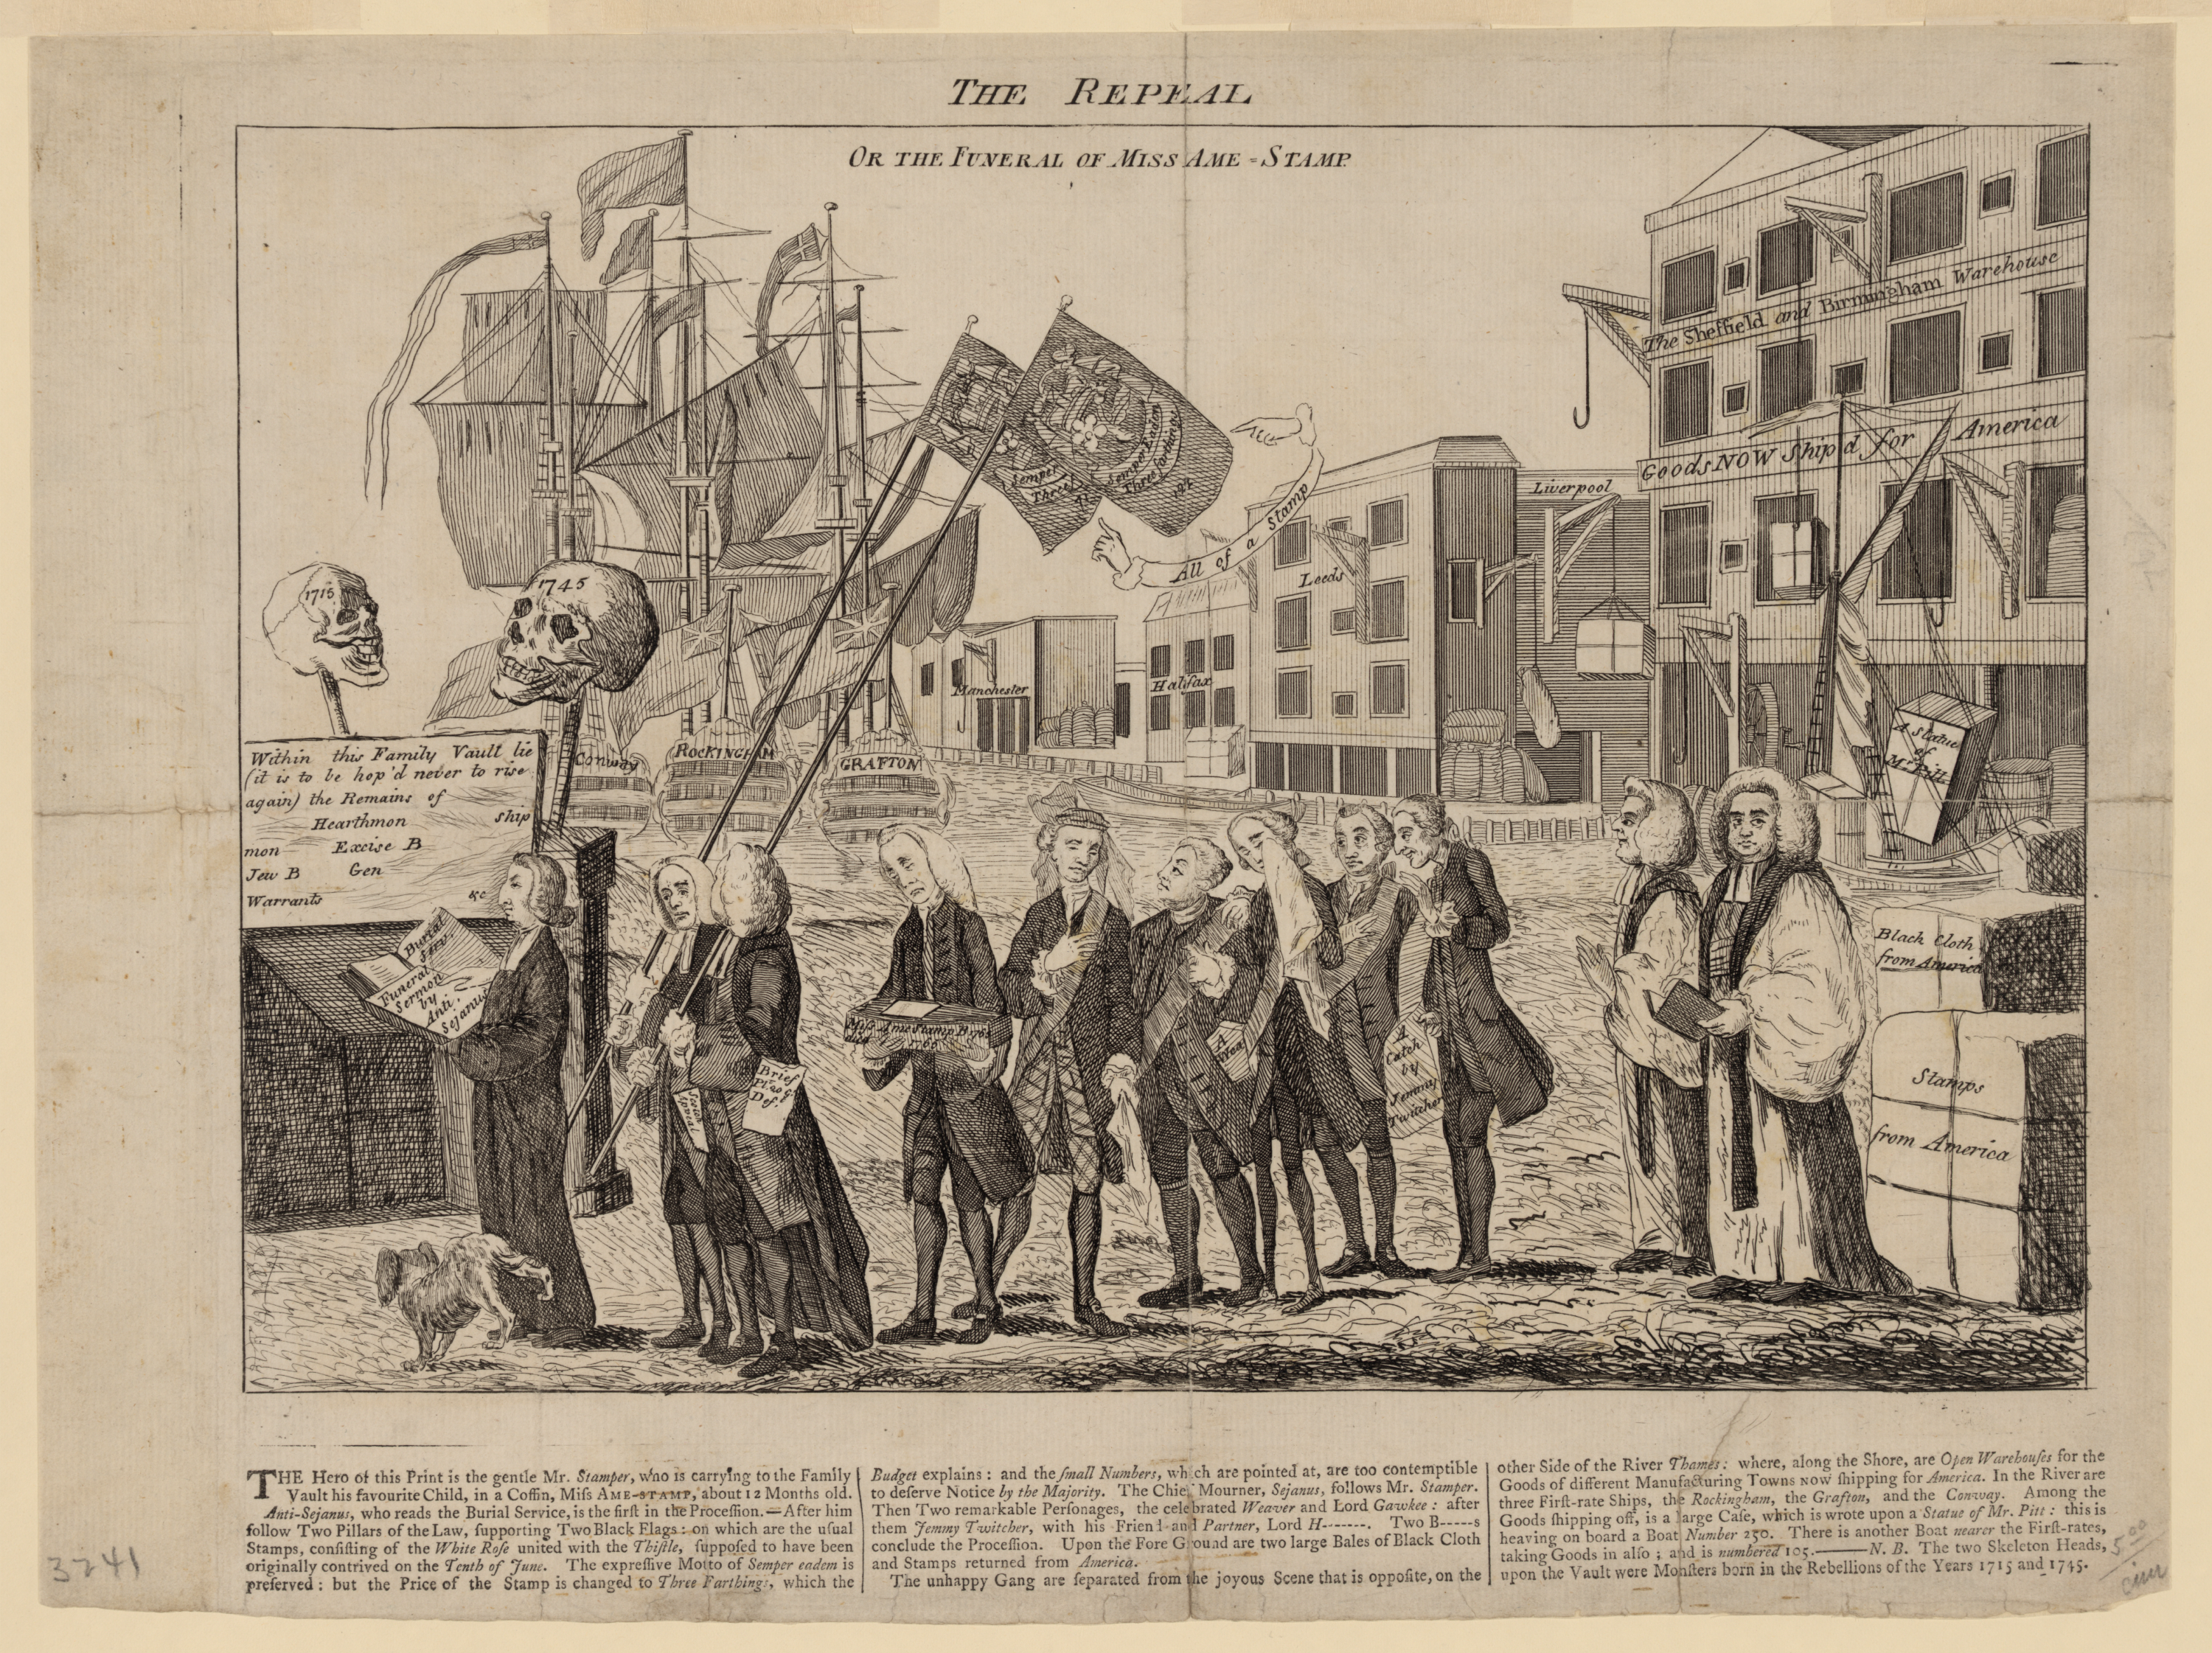 an introduction to the history and the causes for the boston massacre On the cold, snowy night of march 5, 1770, a mob of american colonists gathers  at the customs house in boston and begins taunting the british.